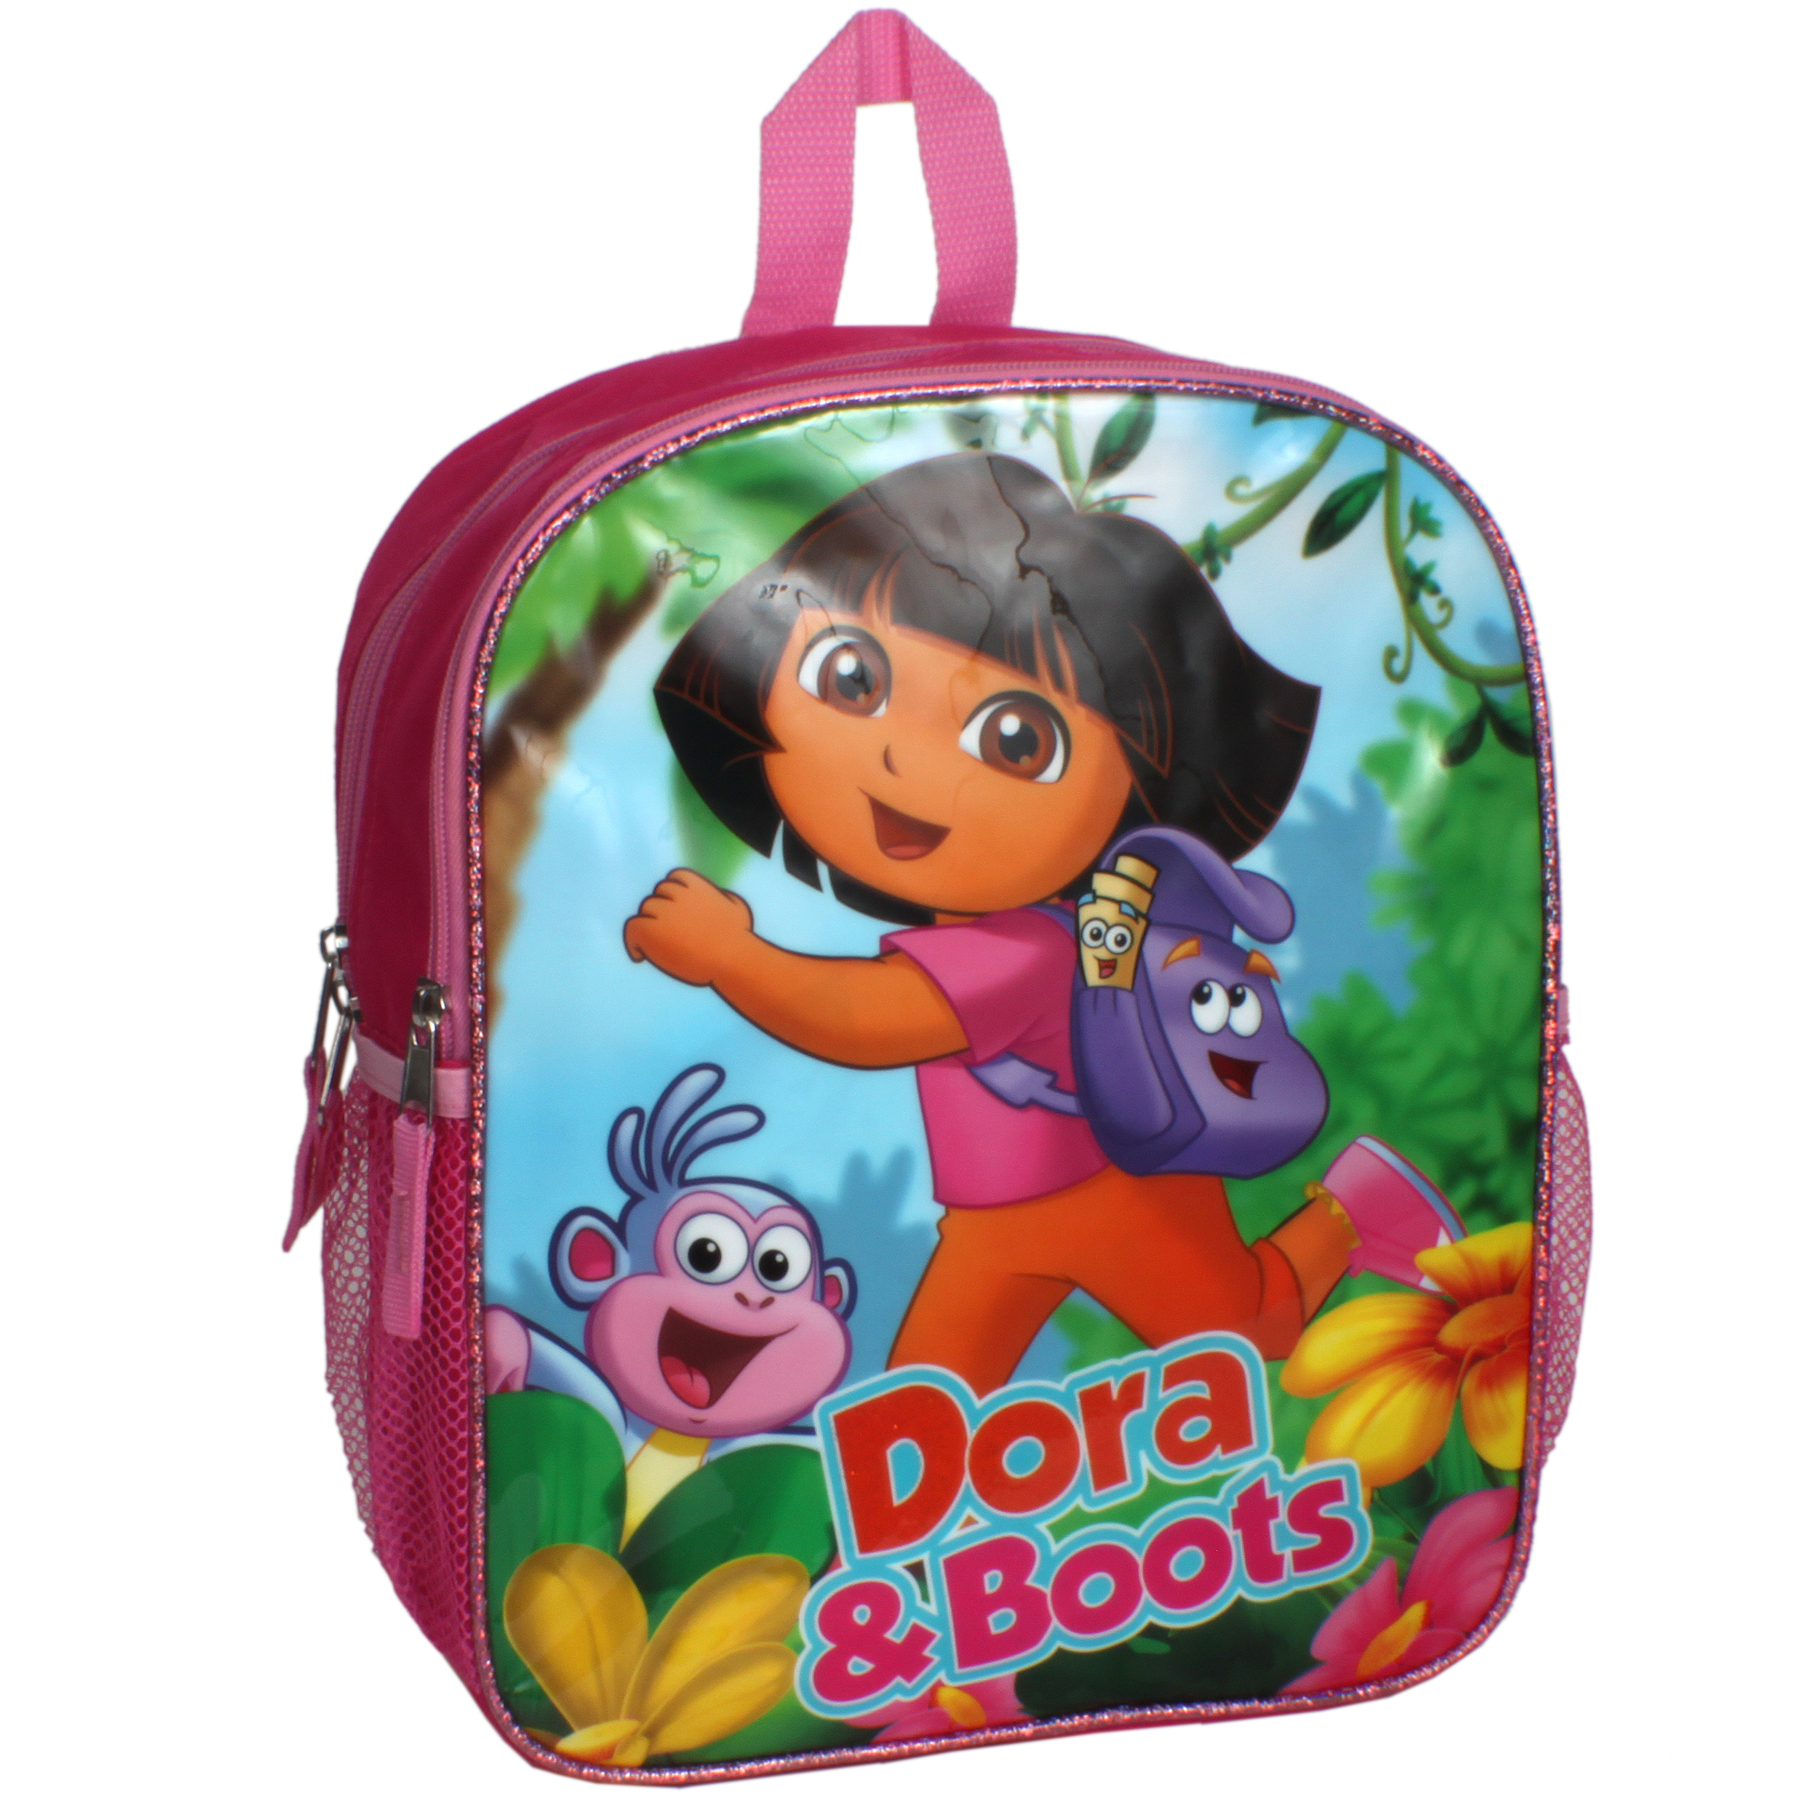 Dora the Explorer. Find Boots 12in Backpack